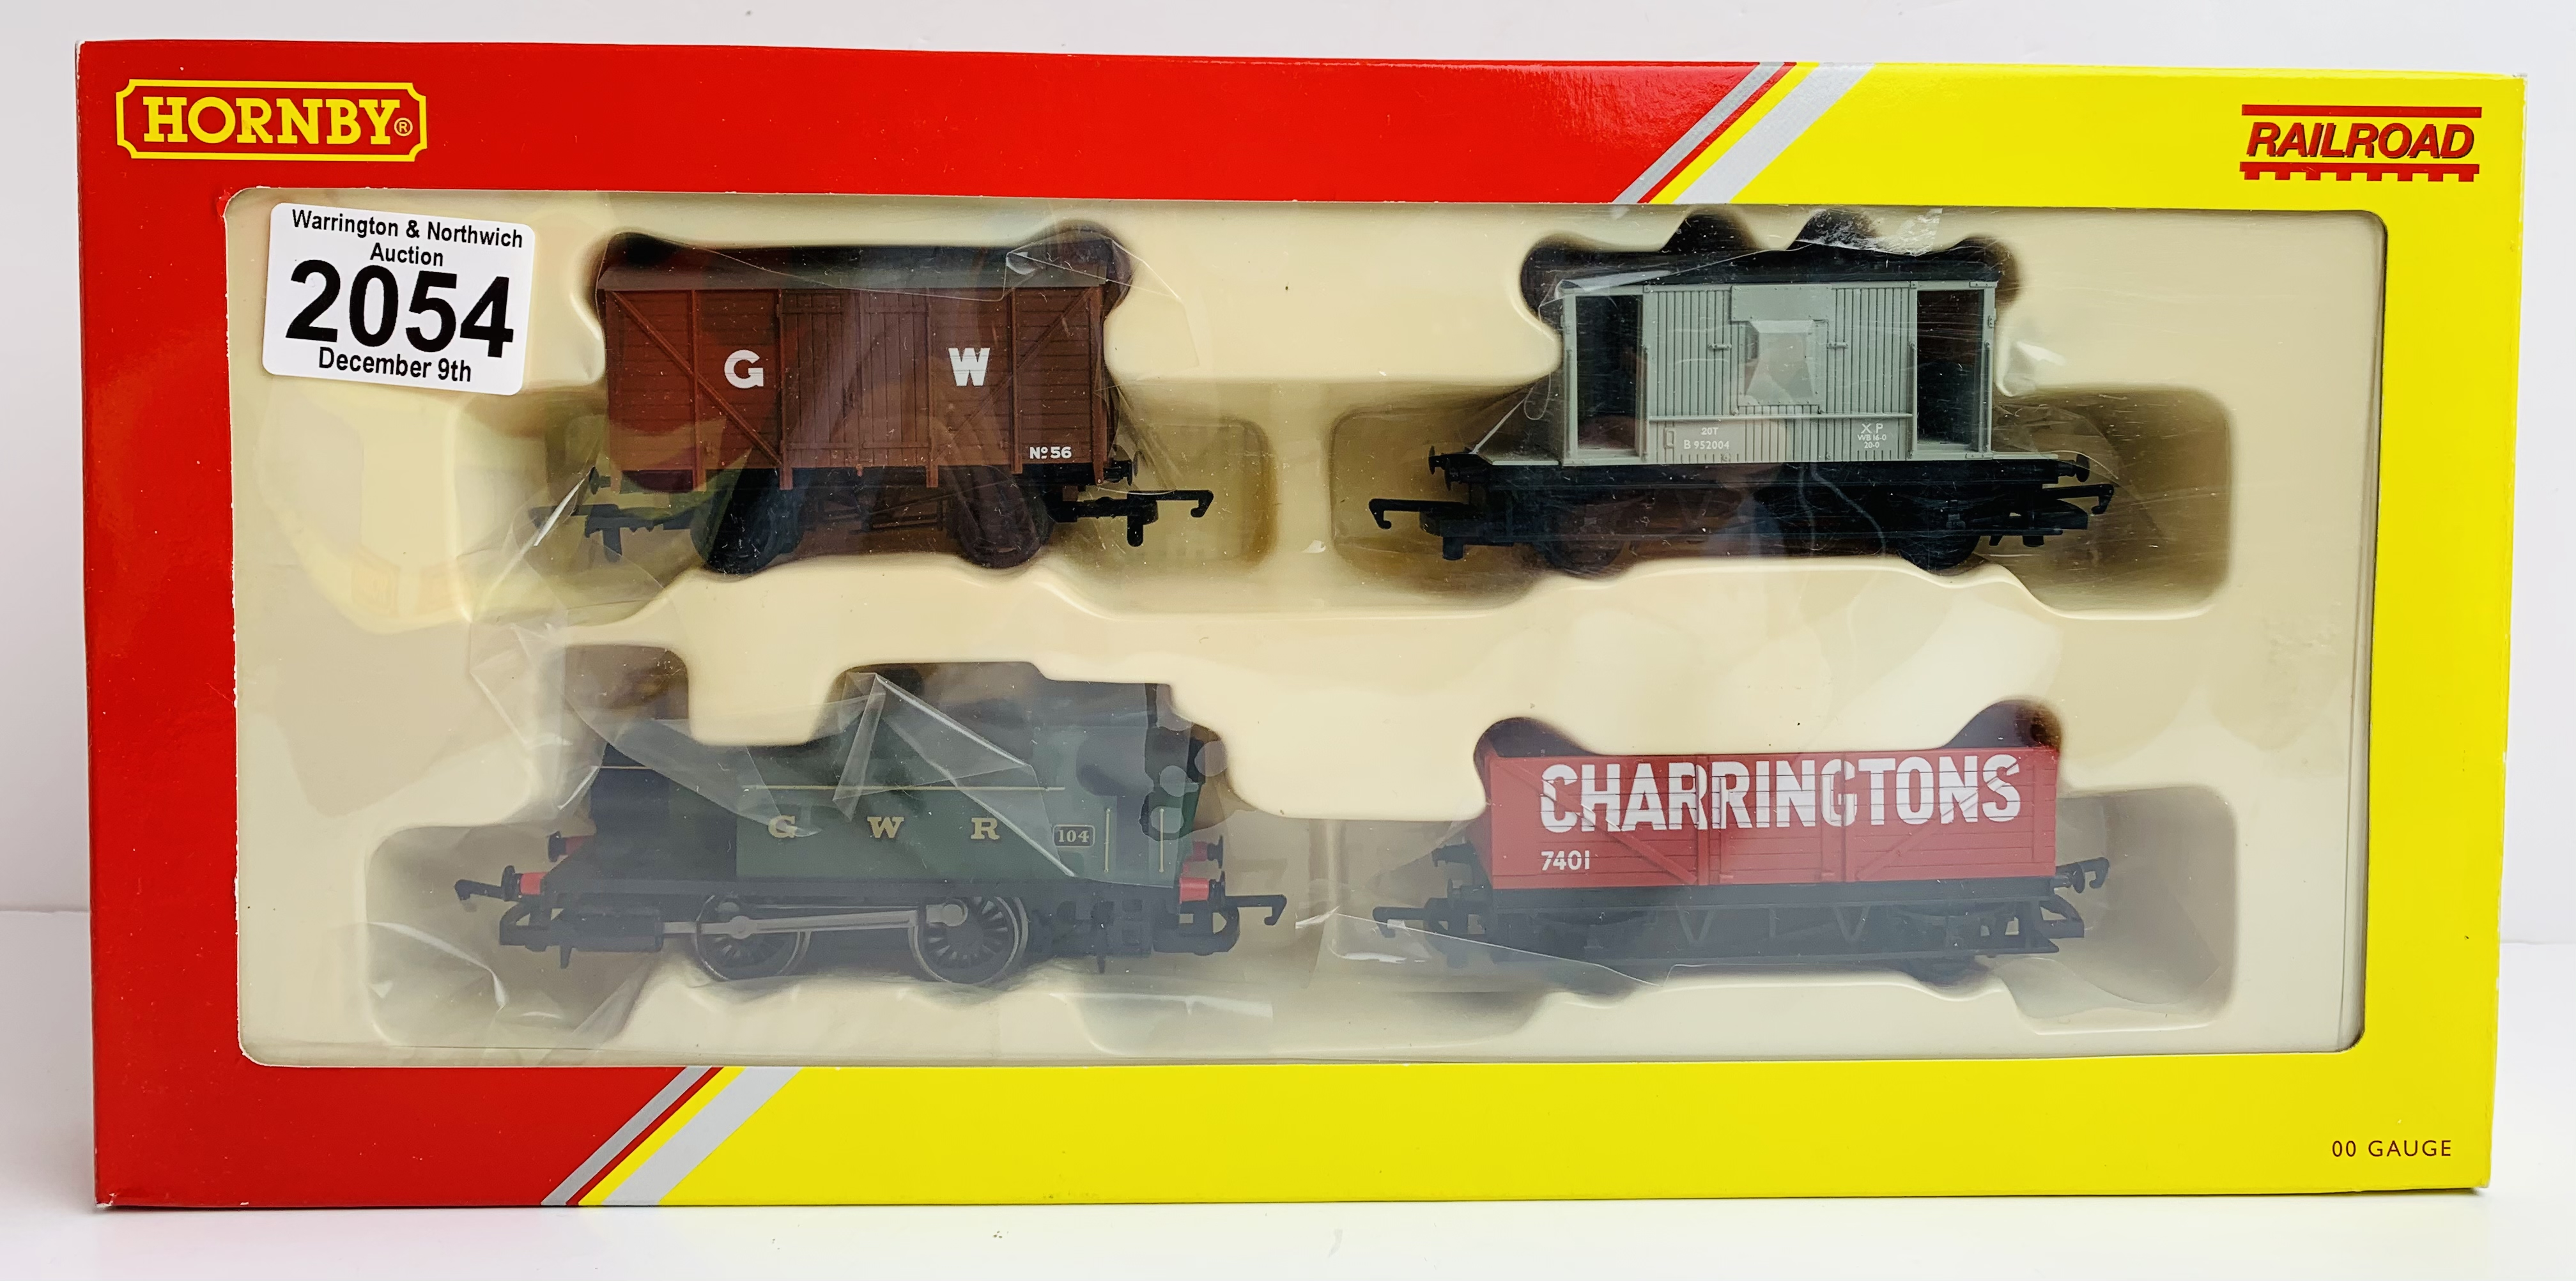 Hornby OO R2670 Railroad Train Pack - Boxed P&P Group 1 (£14+VAT for the first lot and £1+VAT for